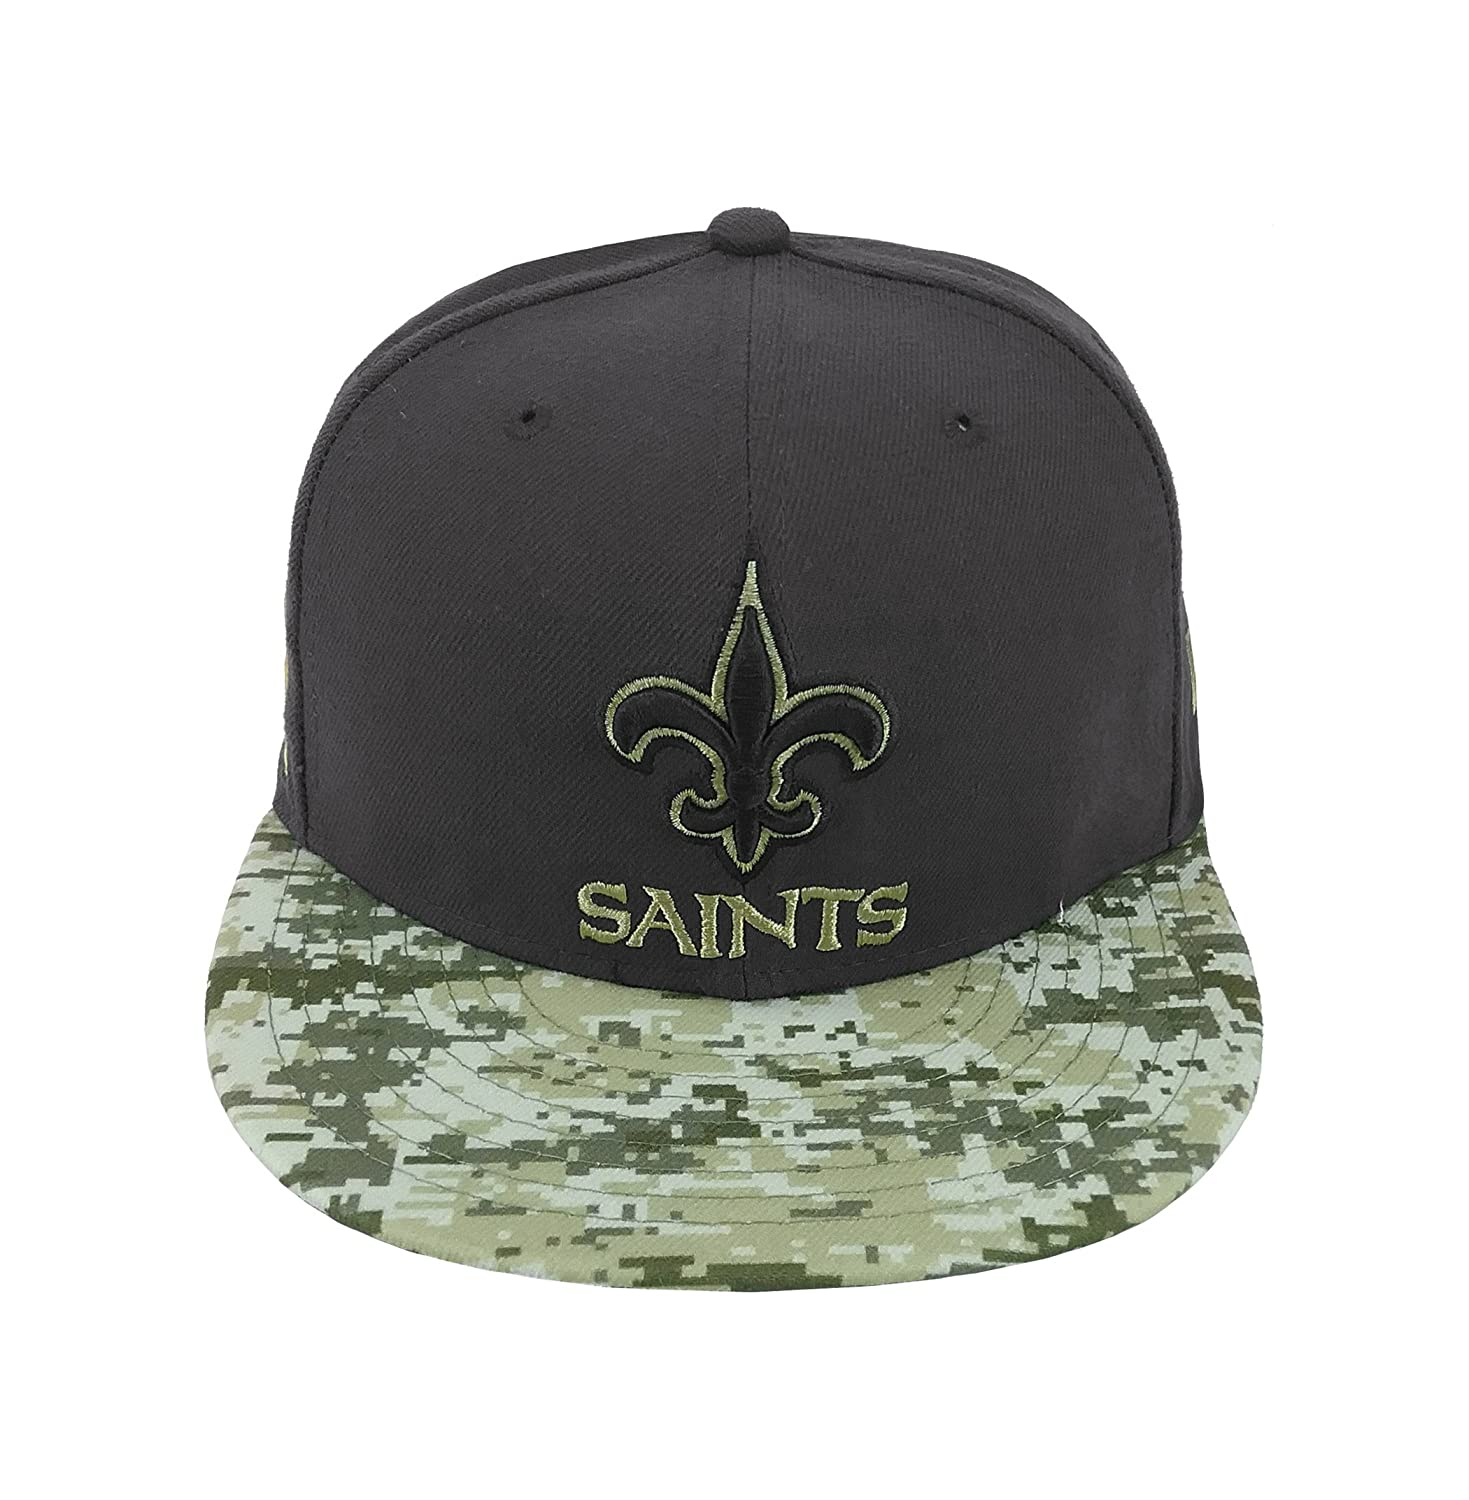 95a534a63 Amazon.com  New Era 59Fifty Hat Orleans Saints NFL 2016 Salute to Service  Gray Camo Cap  Clothing